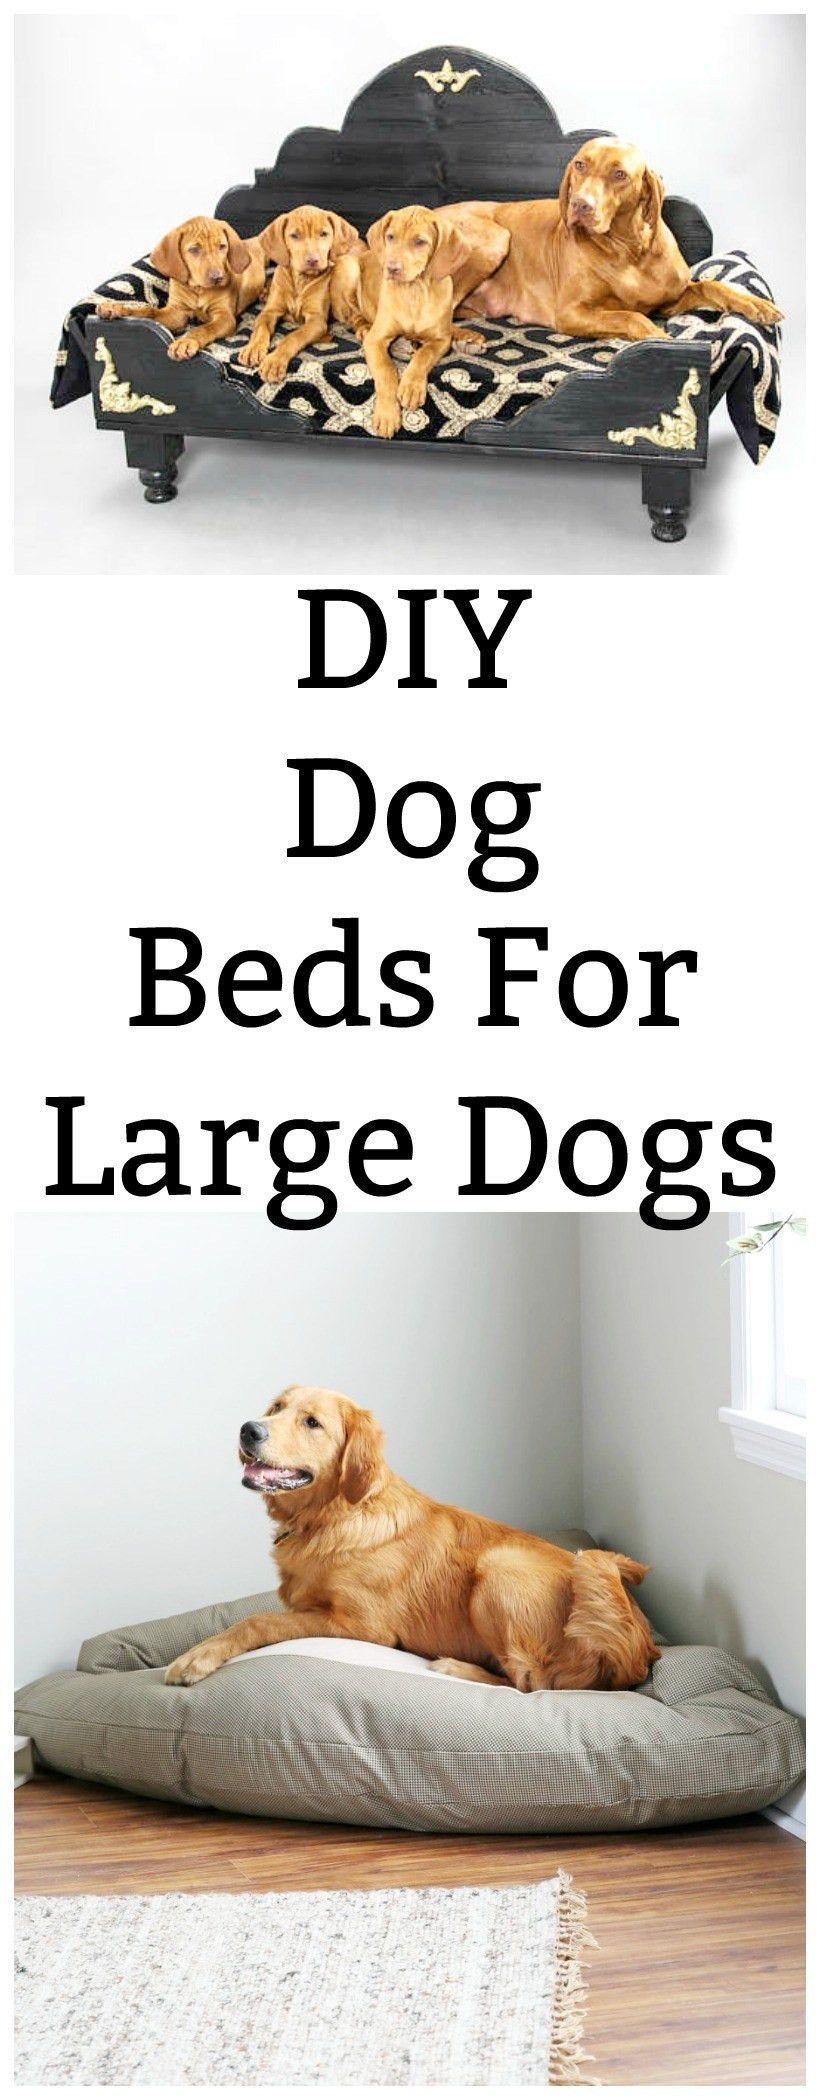 Best ideas about DIY Dog Bed For Large Dogs . Save or Pin DIY Dog Beds for Dogs Chemistry Cachet Now.